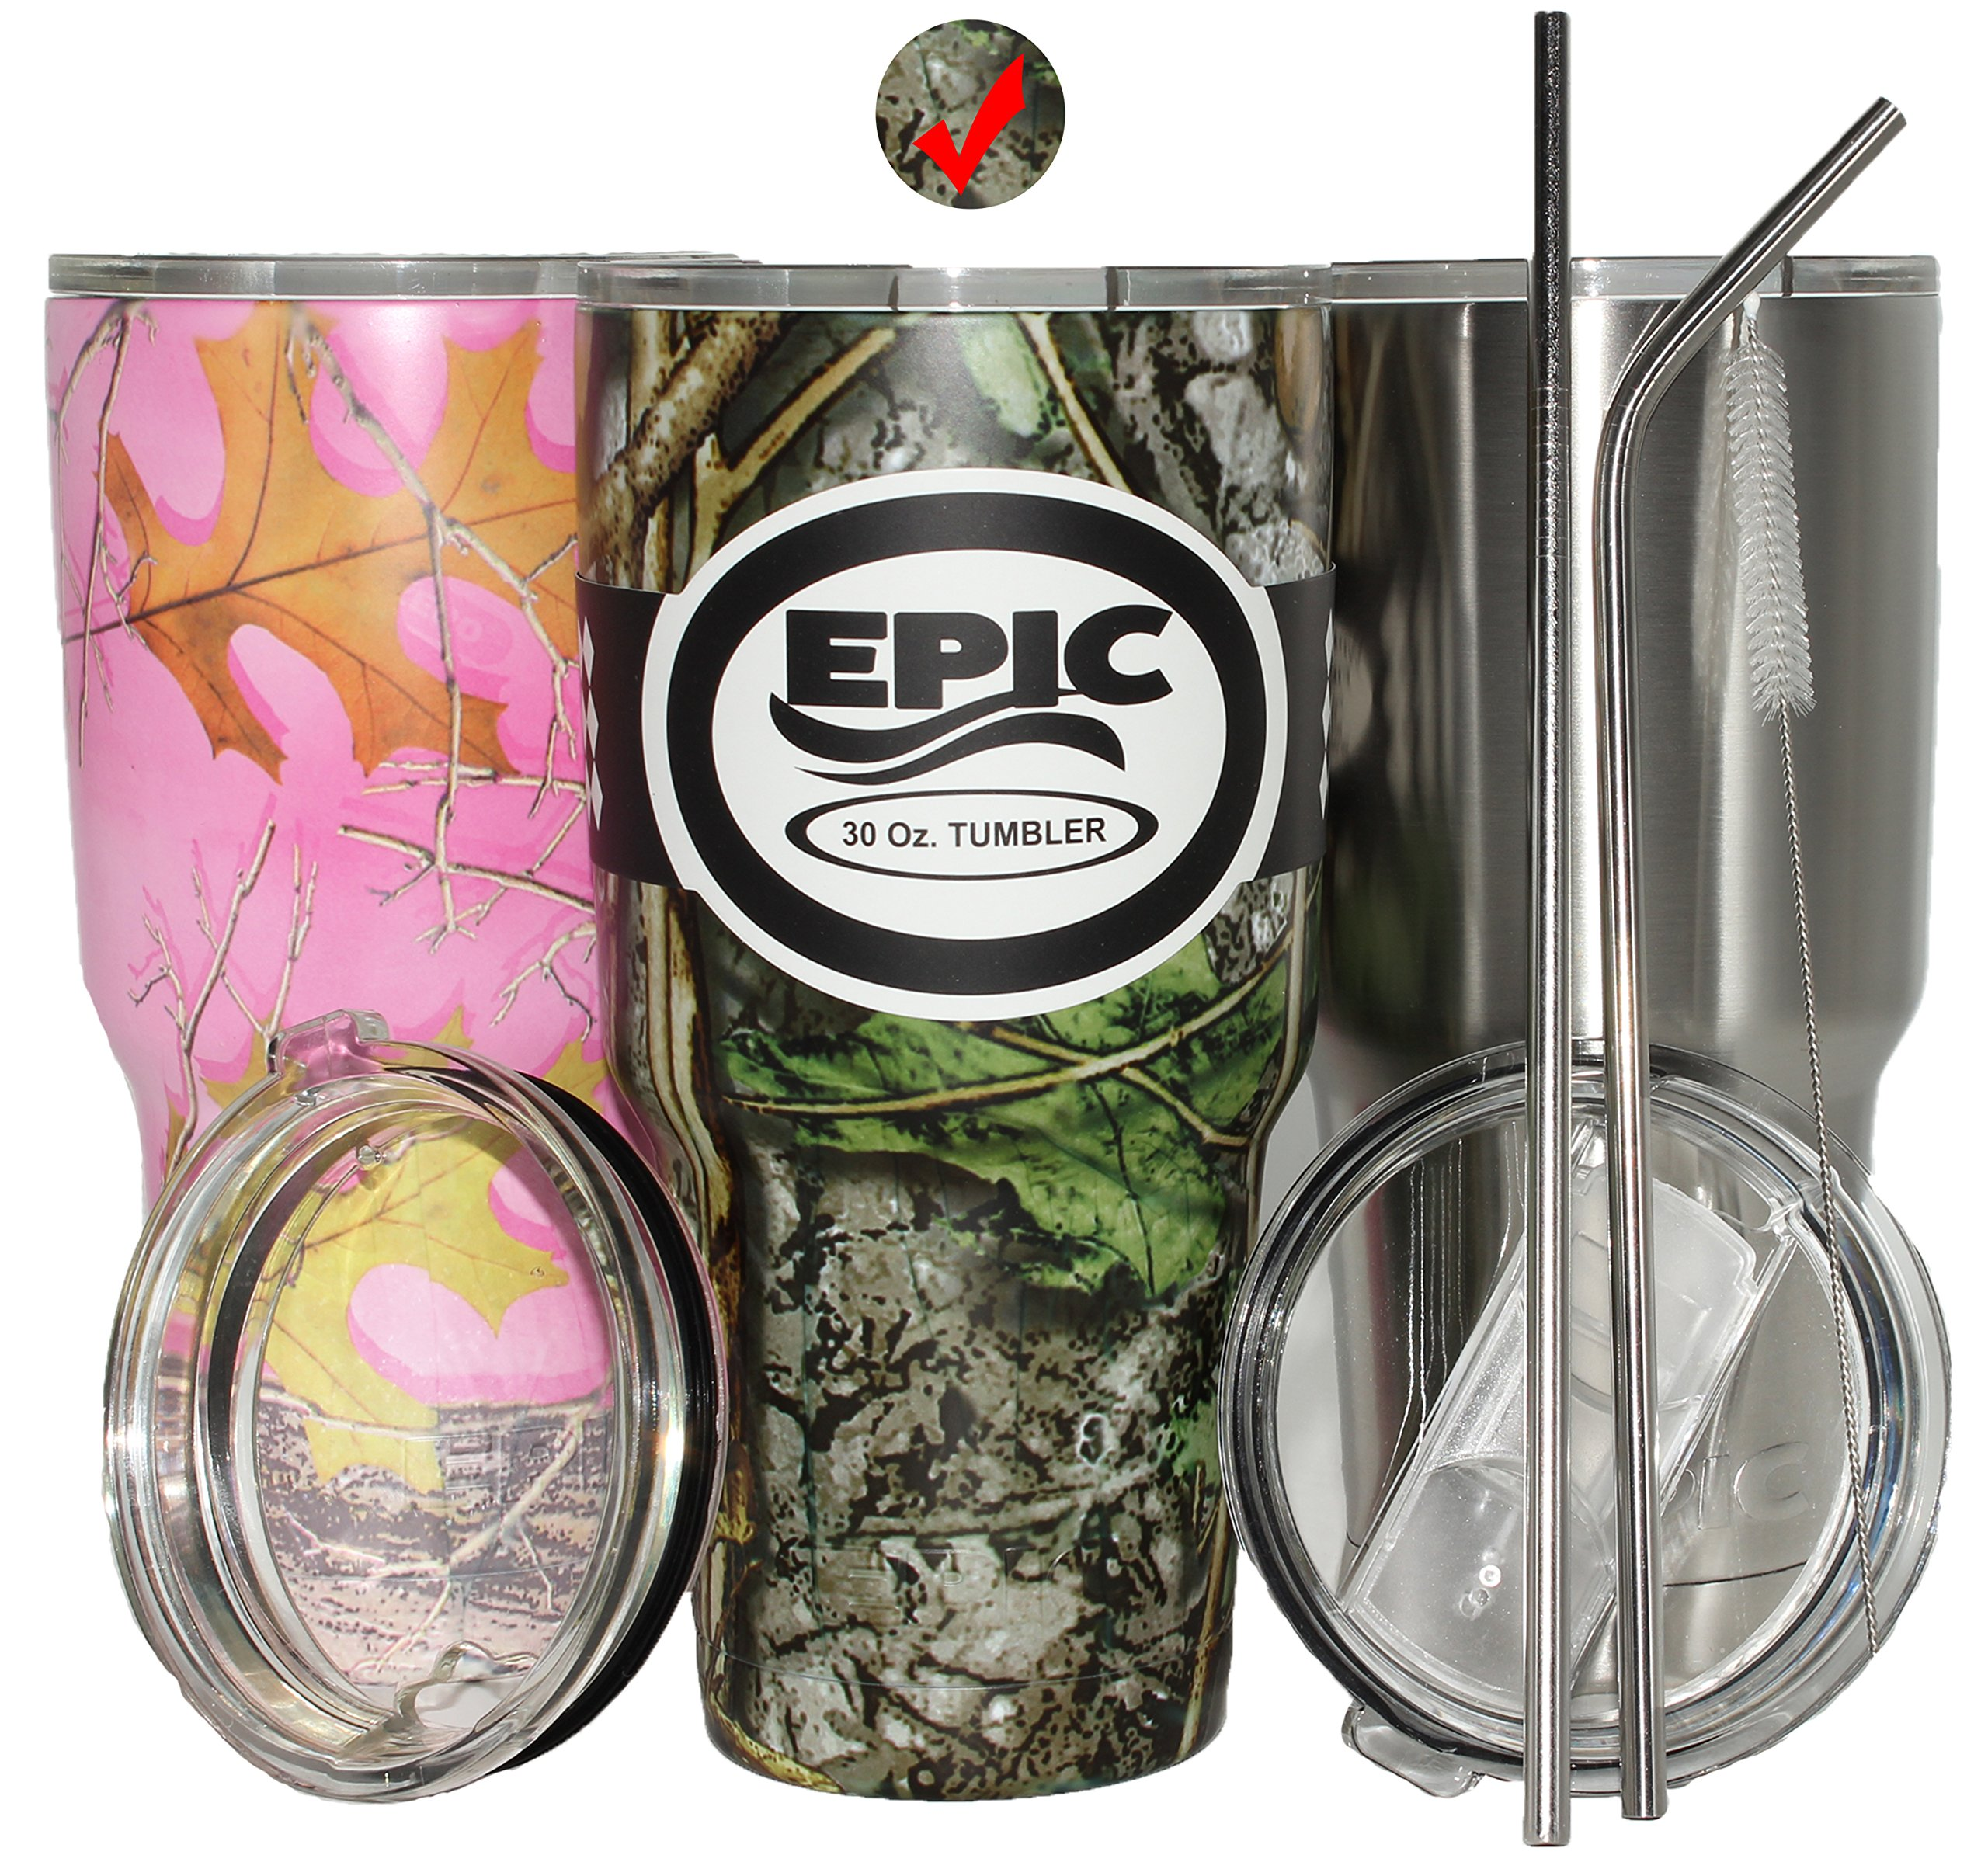 Camo Travel Insulated 30 oz Tumbler - Coffee Mug with 2 Lids and 2 Stainless Steel Straws, 30 oz- Green Camouflage Tumbler by EPIC